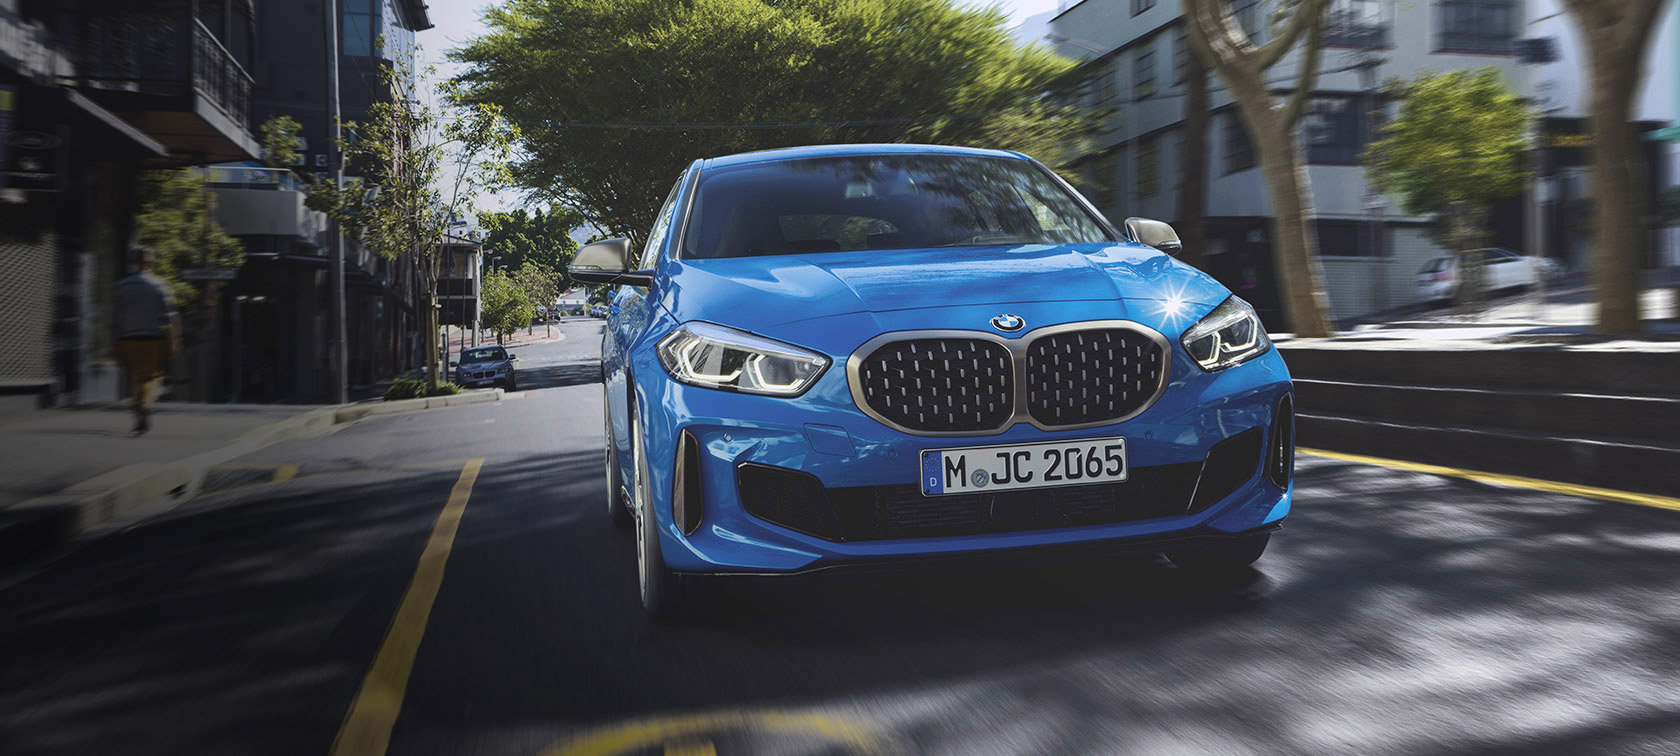 Bmw 1 Series Highlights New Vehicles Bmw Uk